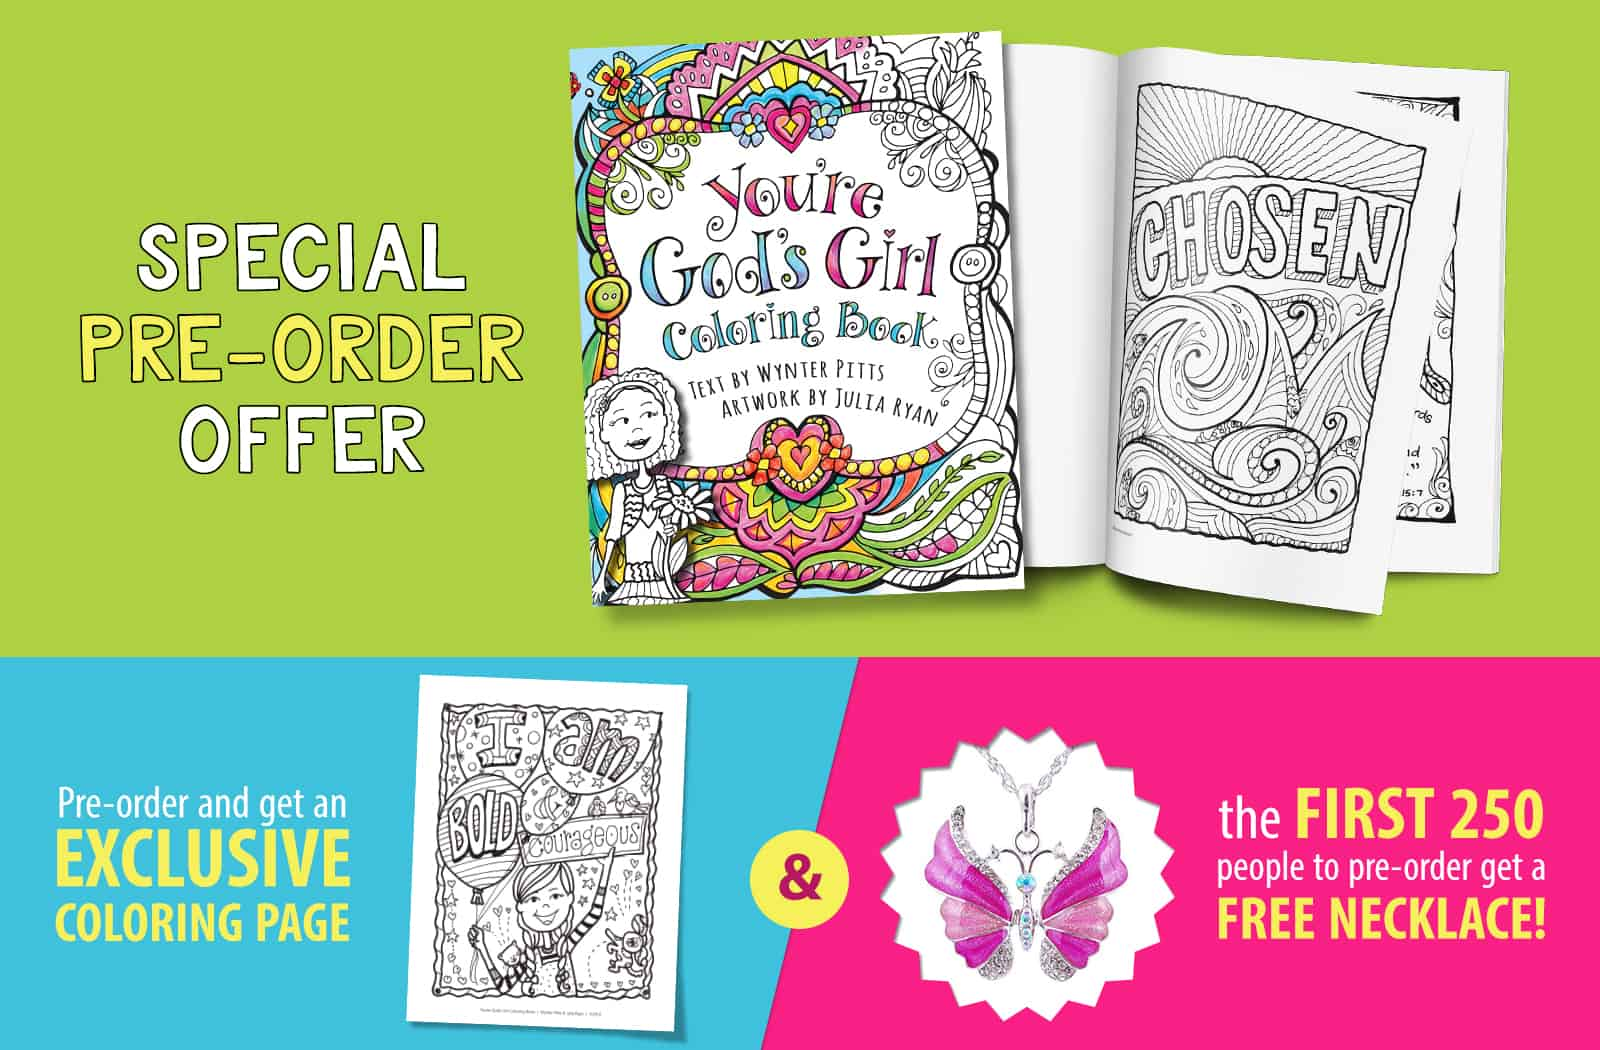 You\'re God\'s Girl! Coloring Book for Tweens! - For Girls Like You